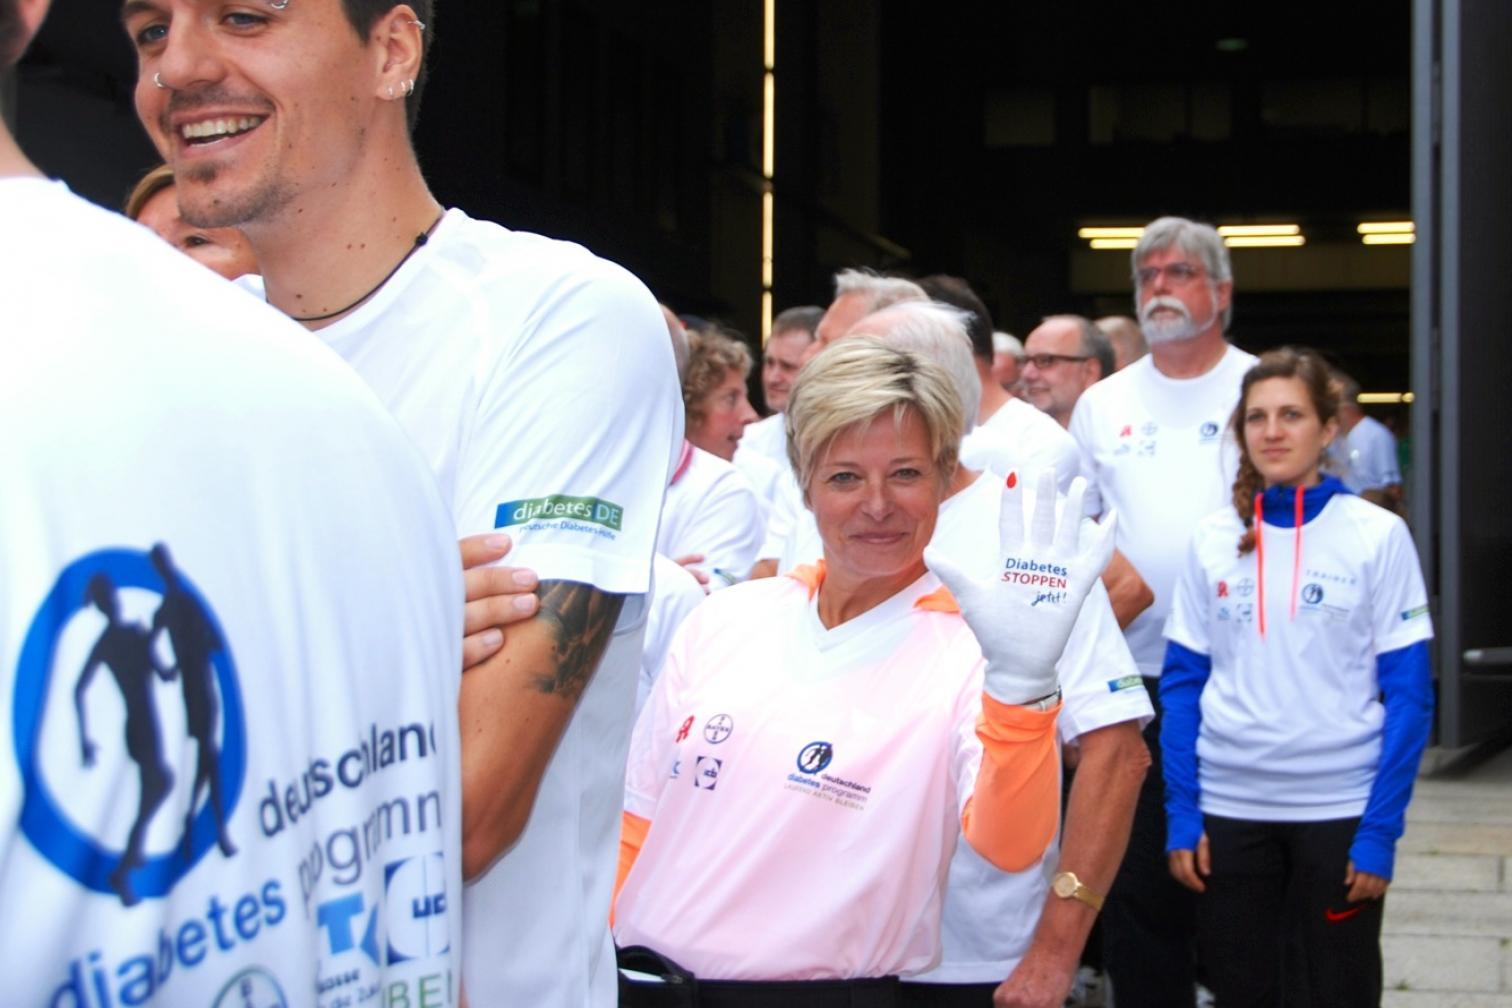 Warteschlange ISTAF - Diabetes Stoppen